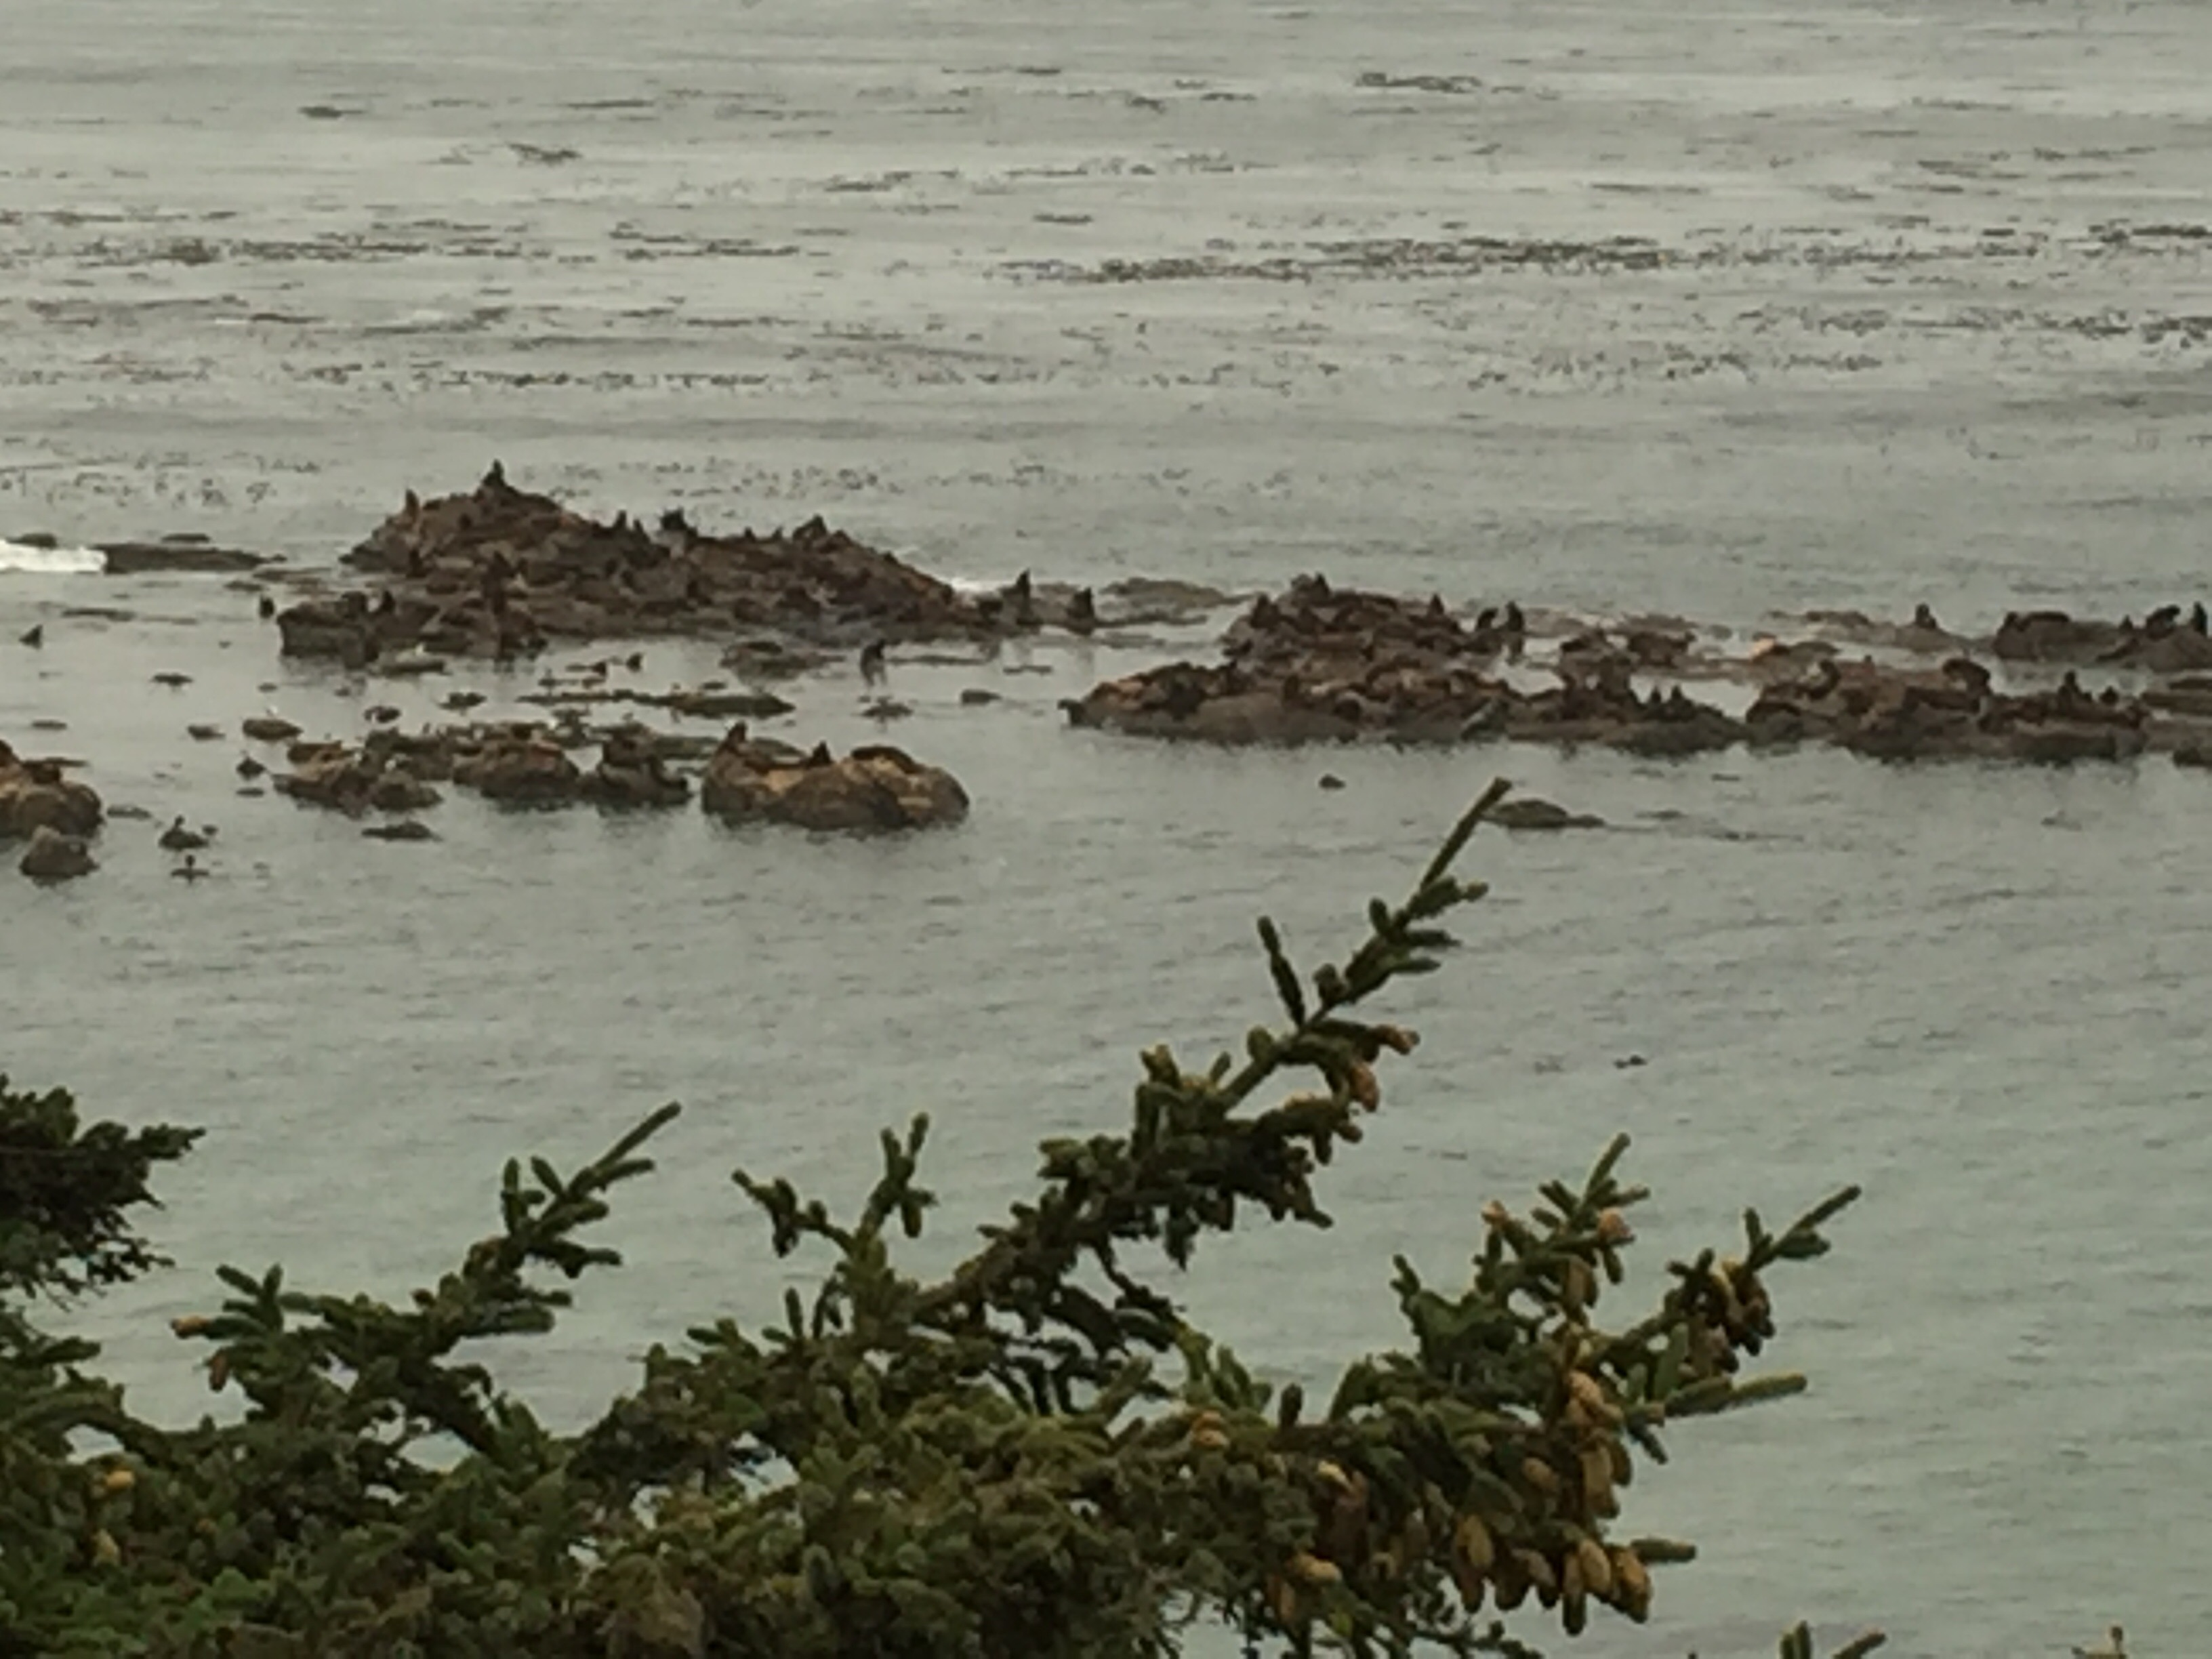 There Were Signs At One Overlook With Pictures Of All The Different Seals And Sea Lions So You Could Figure Out Who Was They Just Seemed To Make